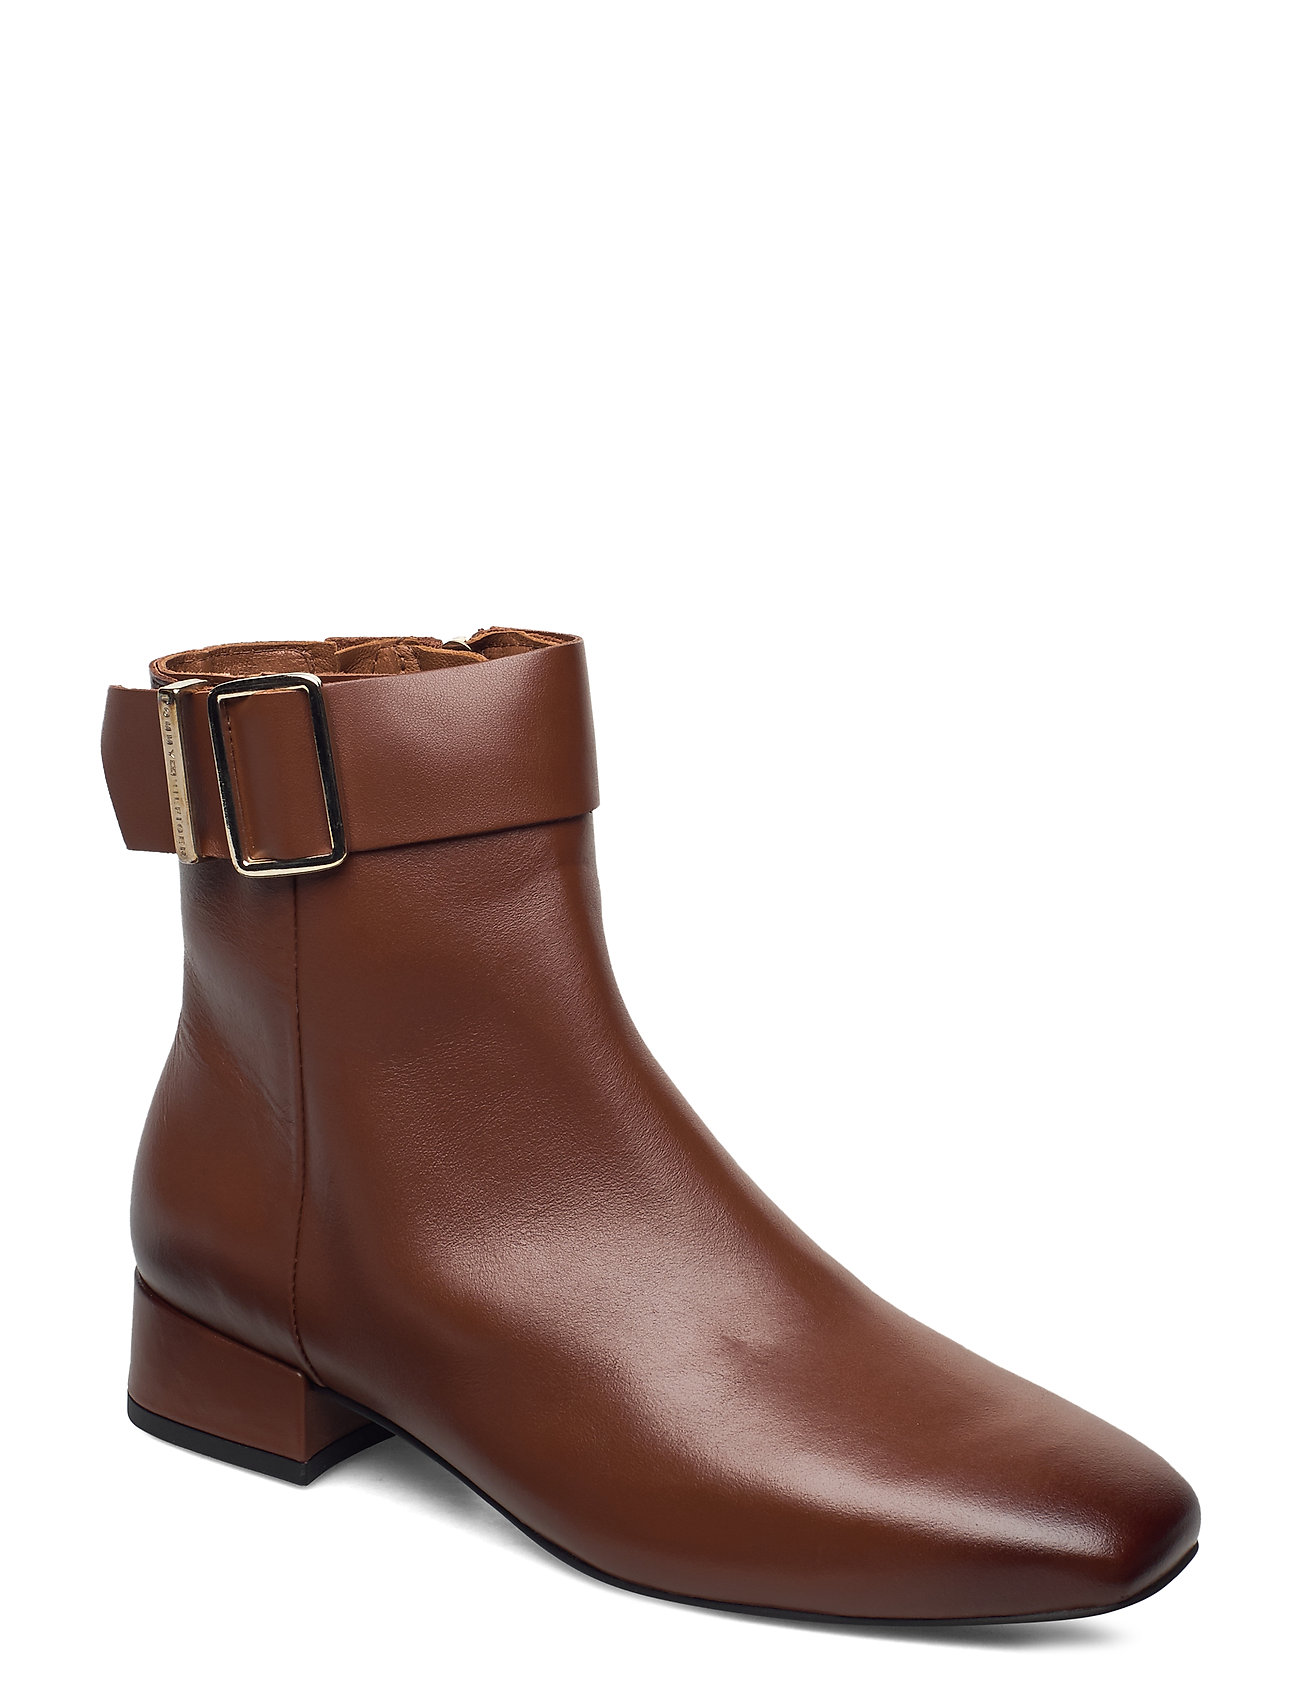 Image of Leather Square Toe Mid Heel Boot Shoes Boots Ankle Boots Ankle Boot - Flat Brun Tommy Hilfiger (3448709301)